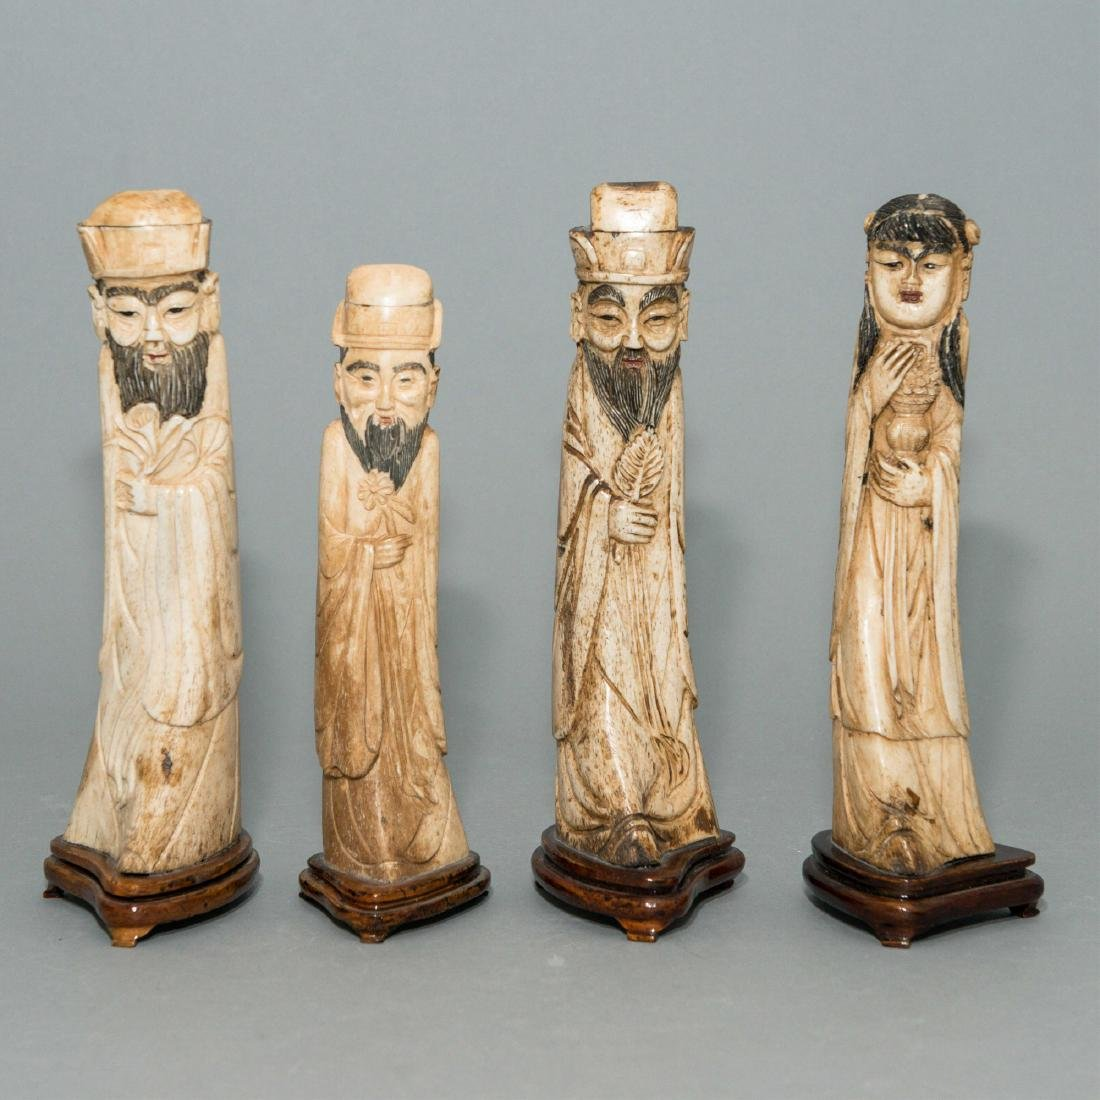 4 CHINESE CARVED ANTLER STATUES, WOOD MOUNTED